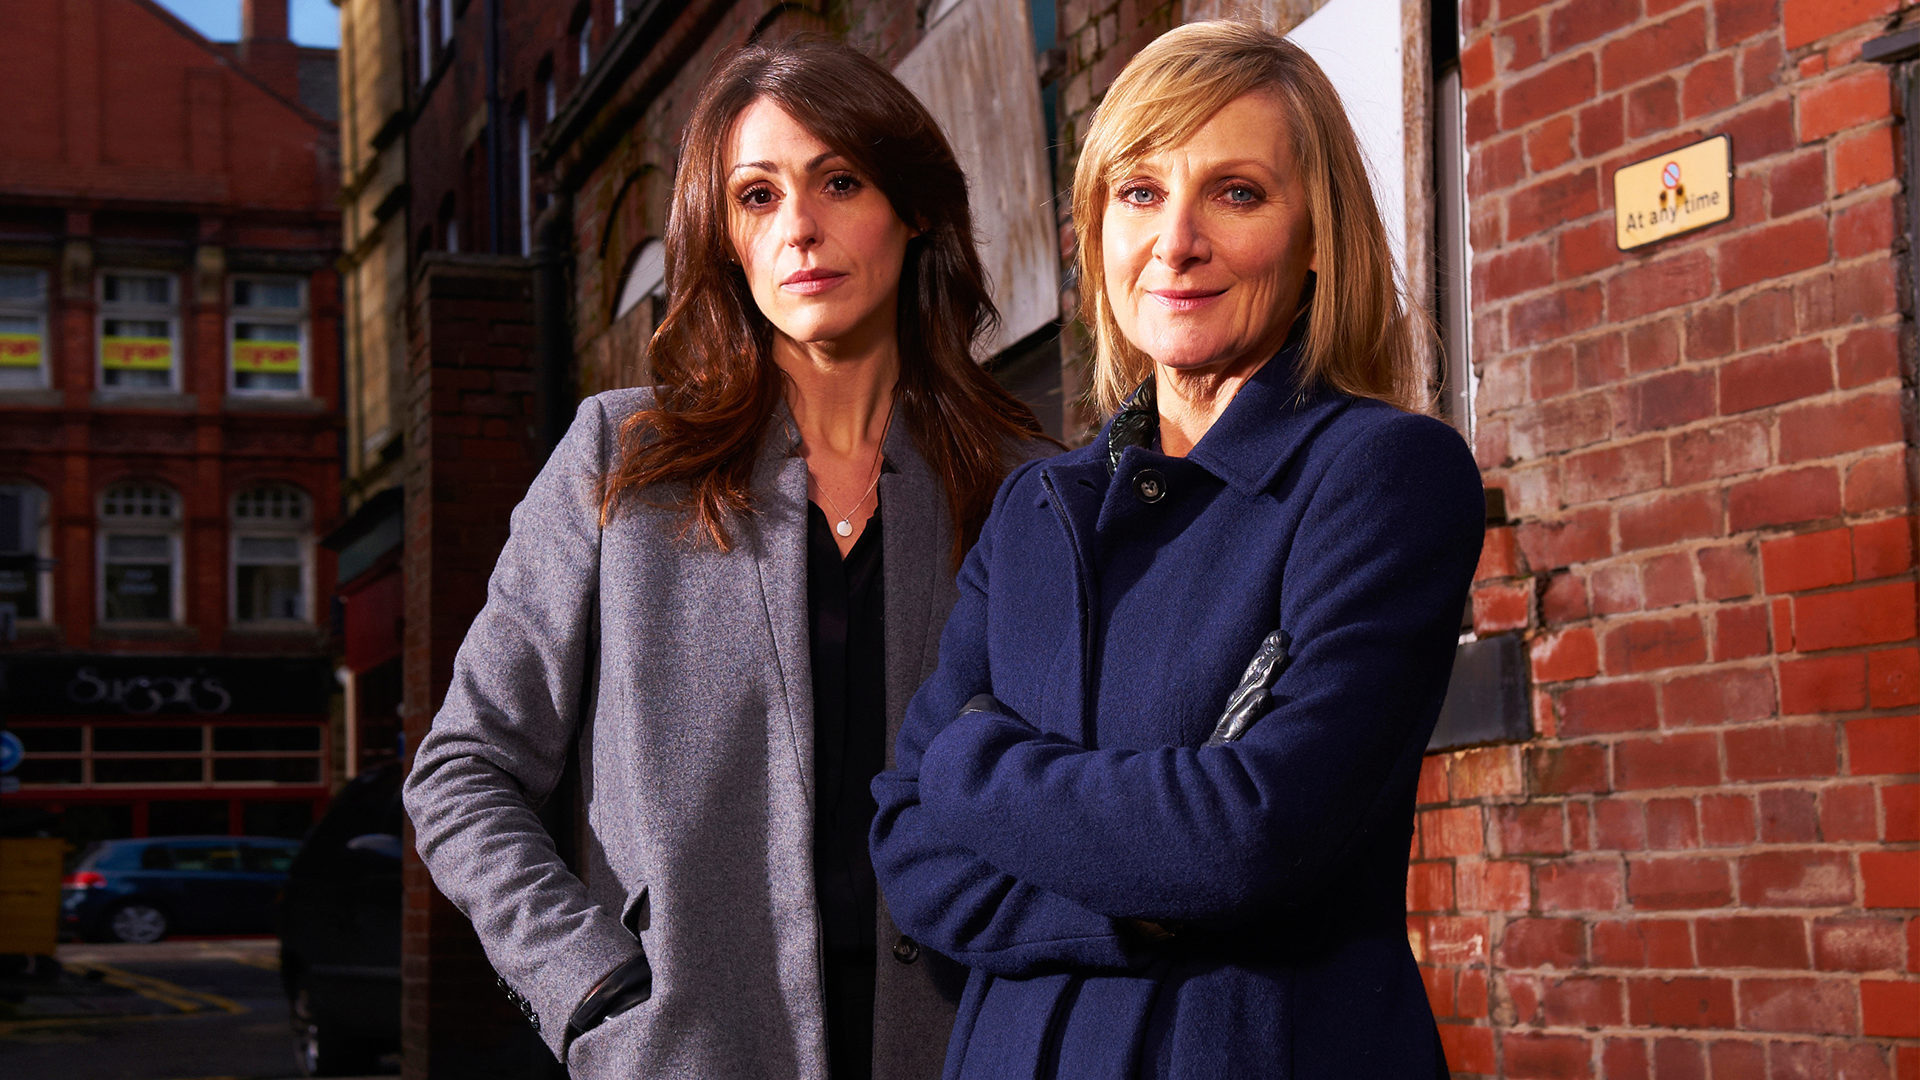 Photo of Detectives Scott and Bailey